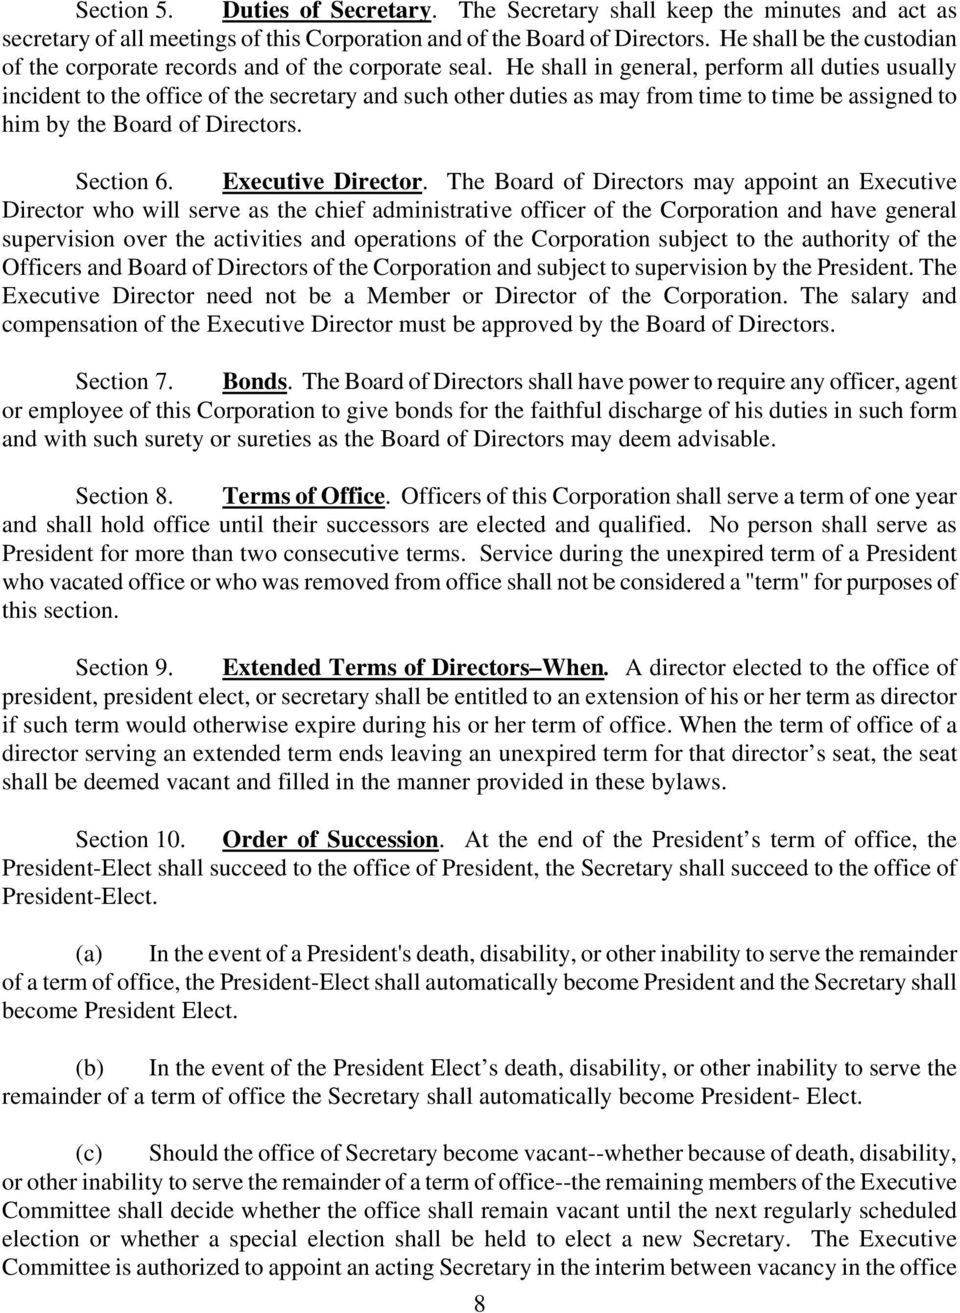 He shall in general, perform all duties usually incident to the office of the secretary and such other duties as may from time to time be assigned to him by the Board of Directors. Section 6.